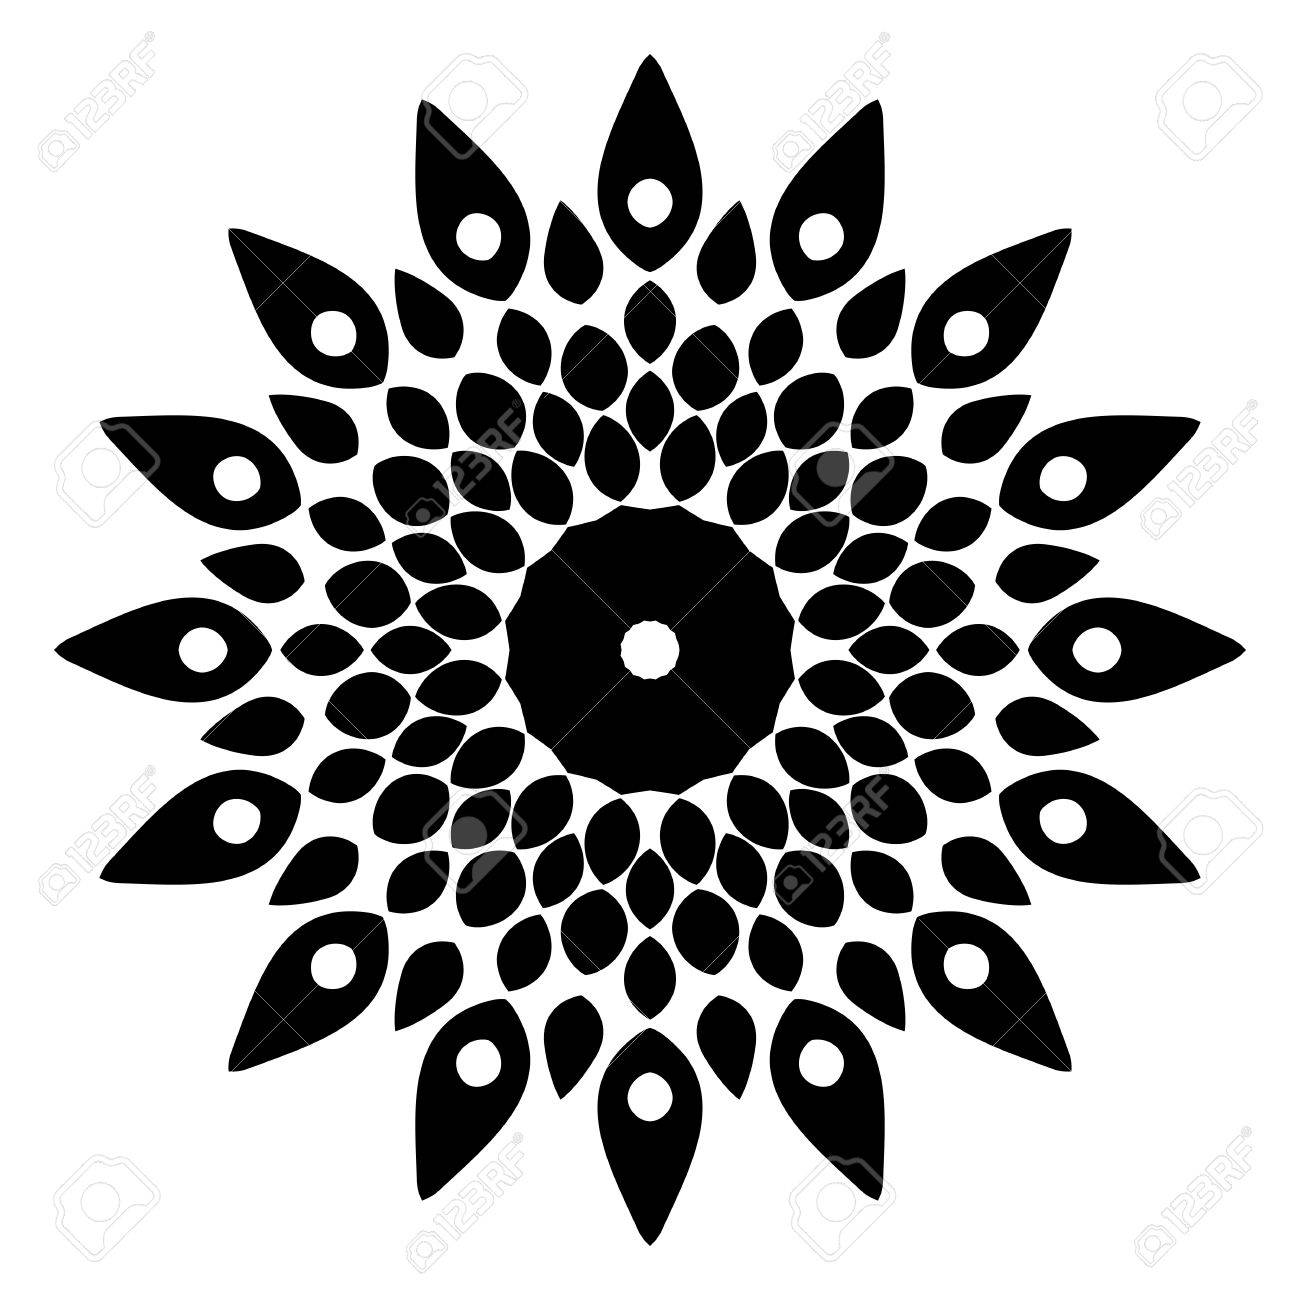 Circular Decorative Element For Design Of Textiles And Printed ...